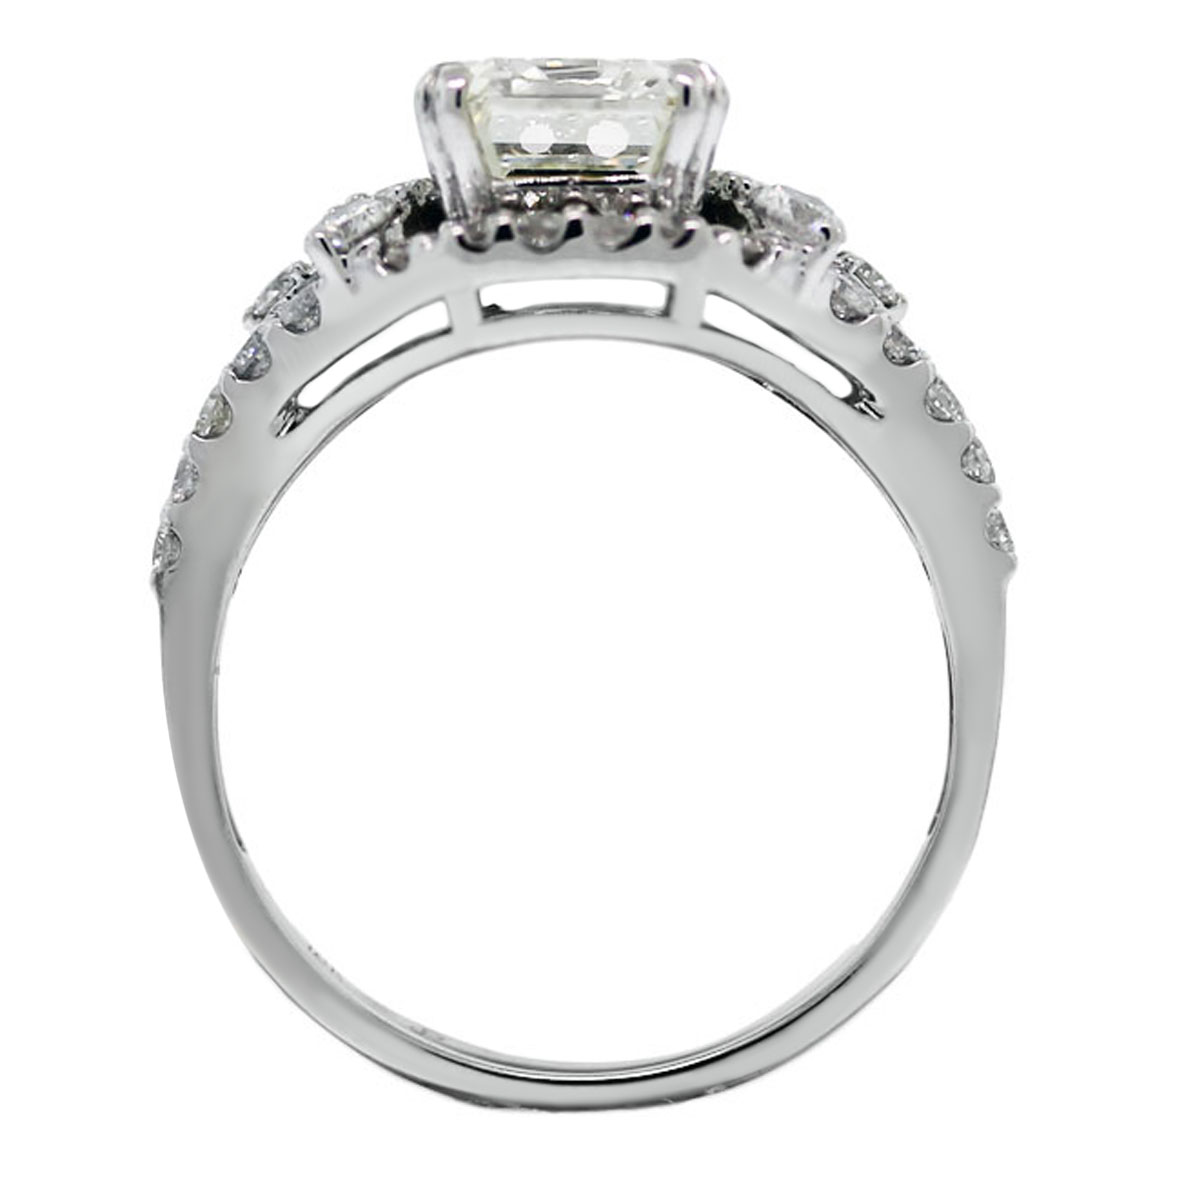 18k white gold 3ct emerald cut engagement ring